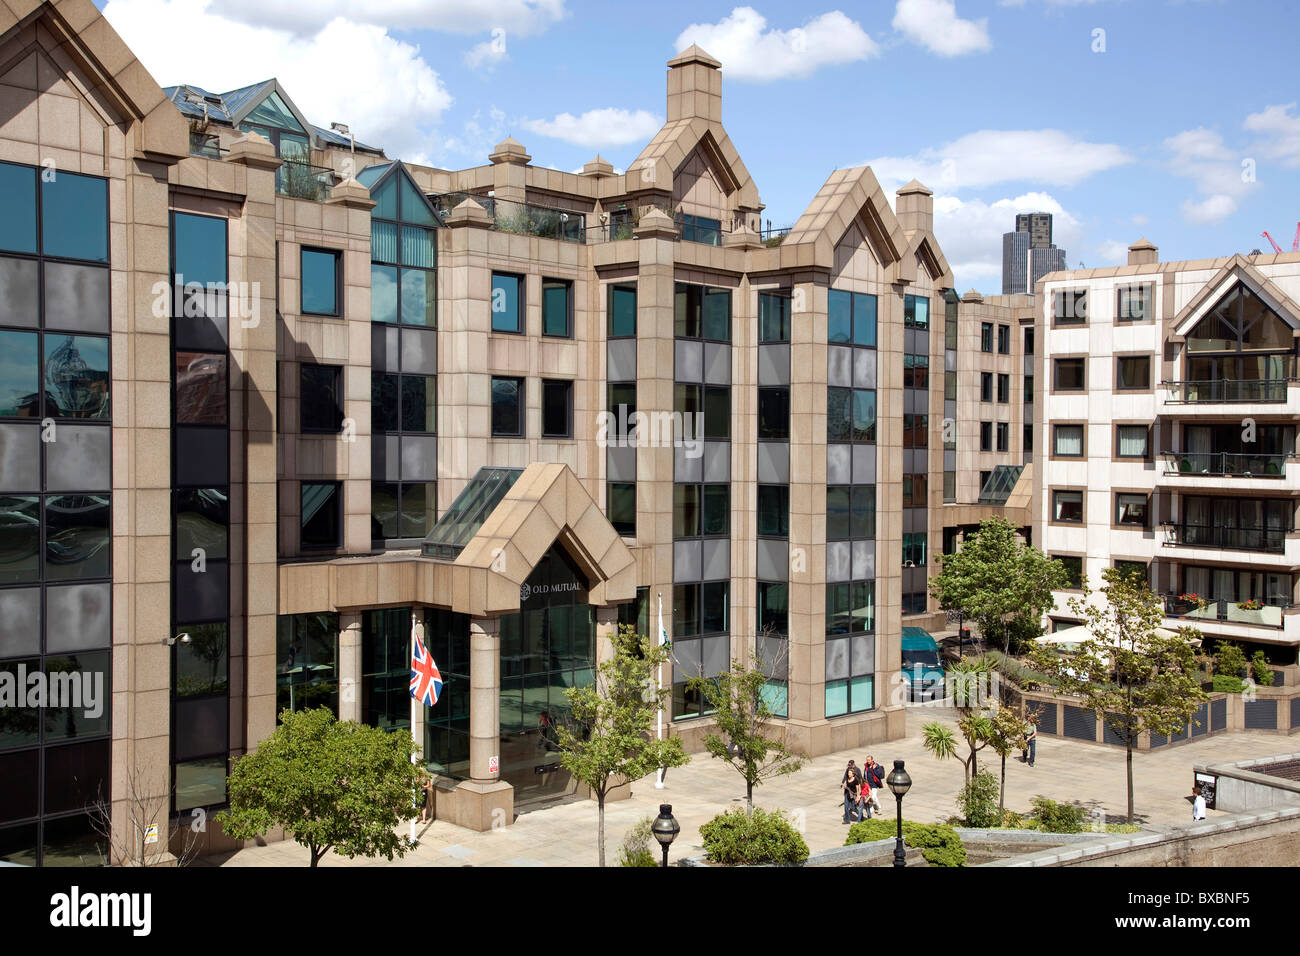 Headquarters of the Old Mutual Insurance in London, England, United Kingdom, Europe - Stock Image